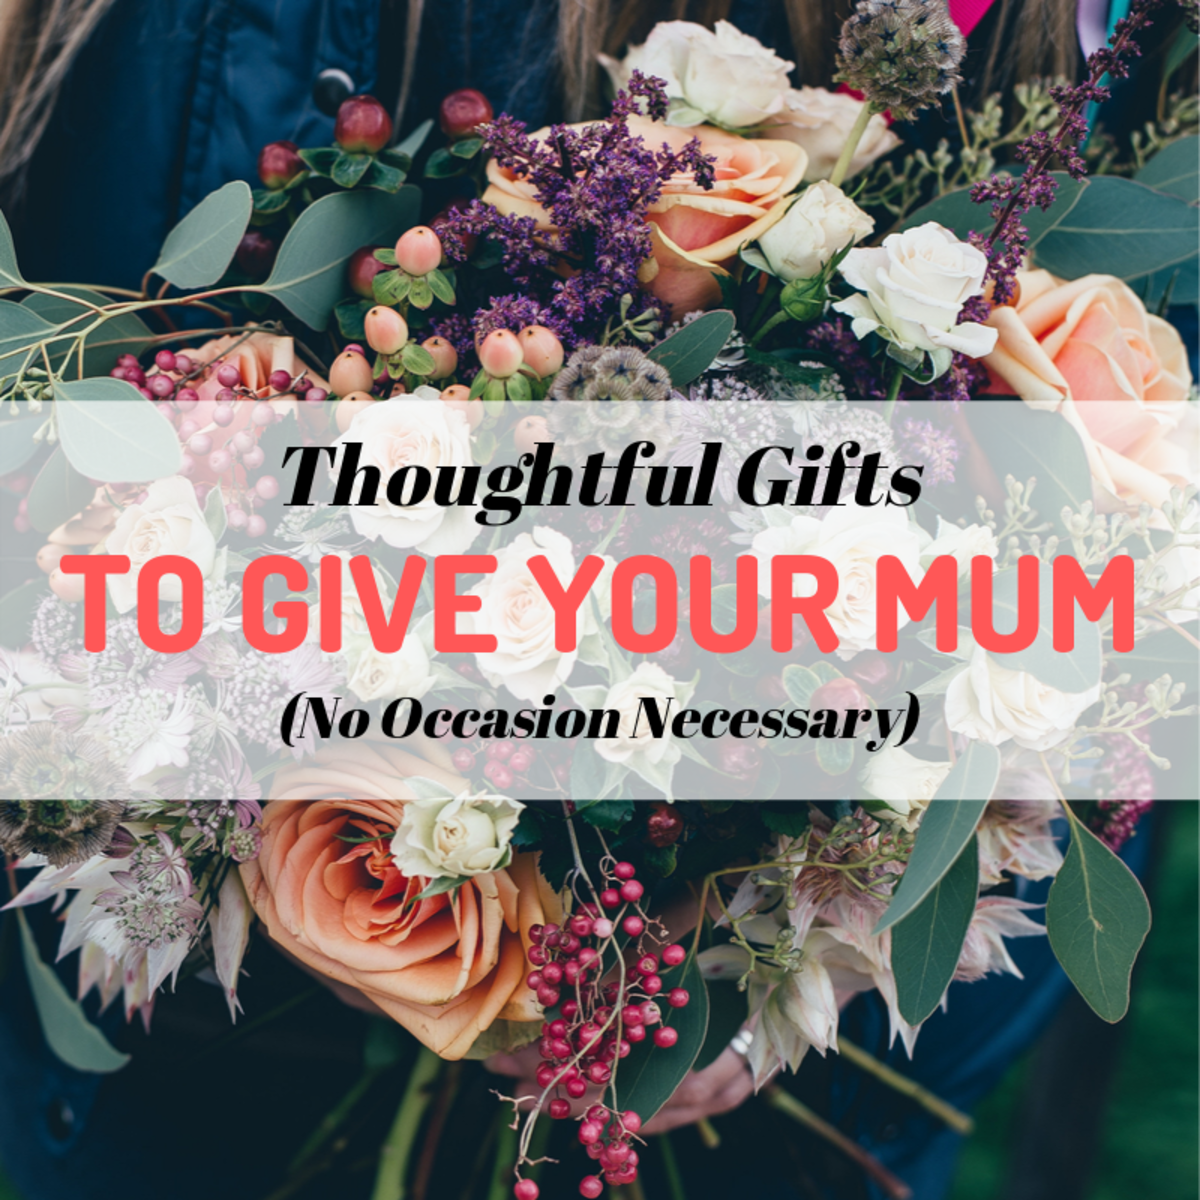 6 Thoughtful and Meaningful Presents to Give to Your Mum